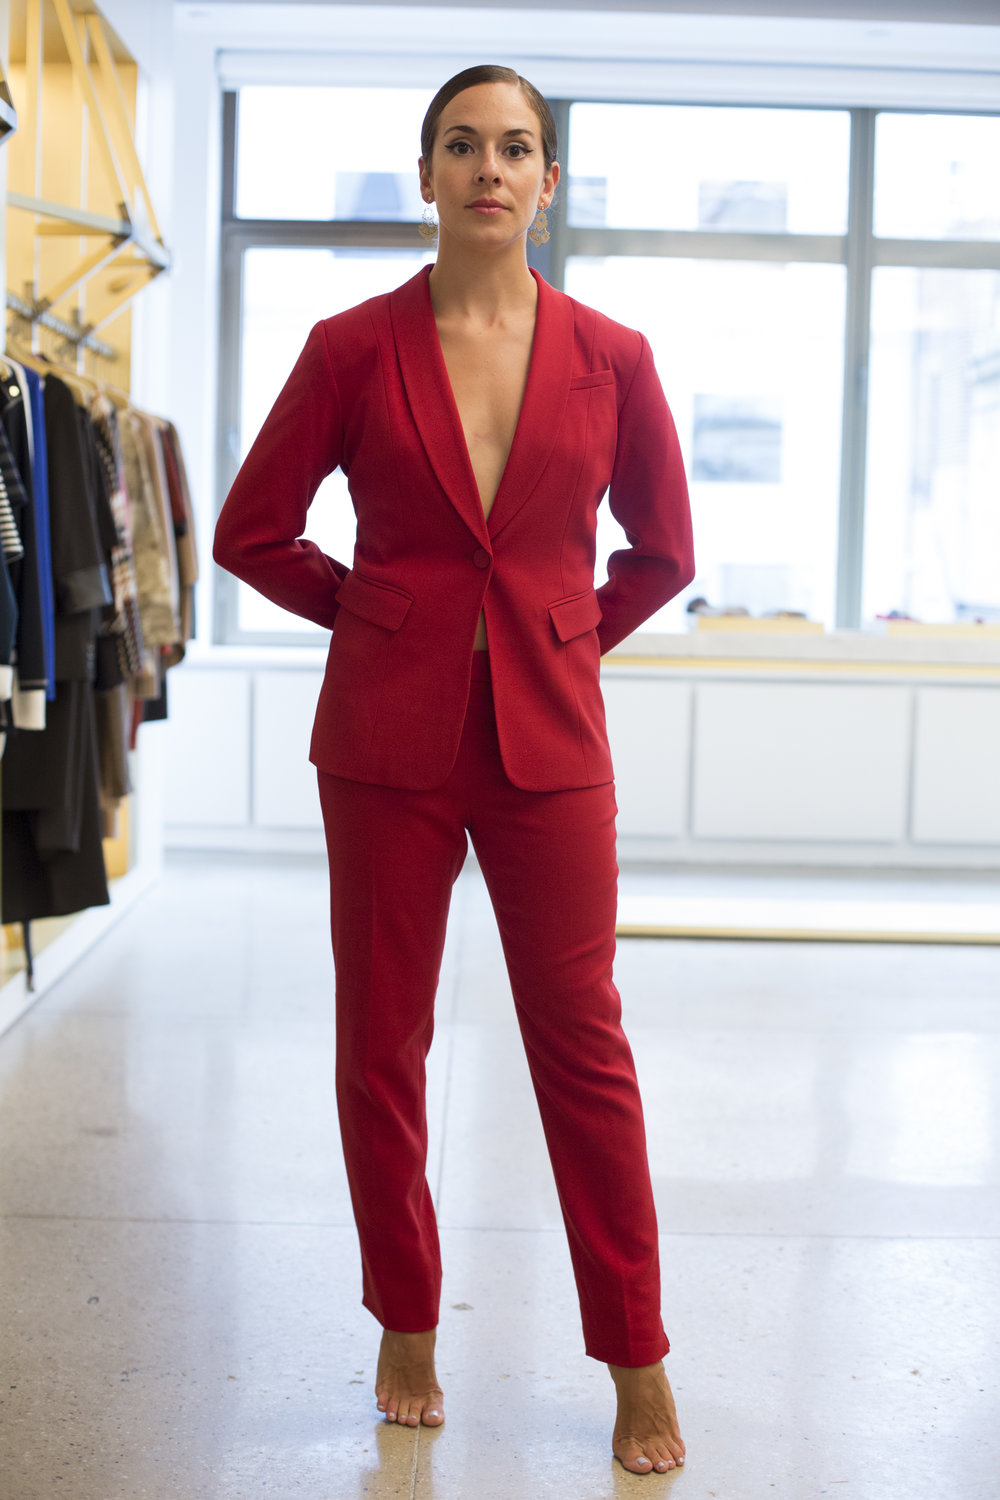 I've dreamed of a red suit for a while, very tailored and longer with a black pump...